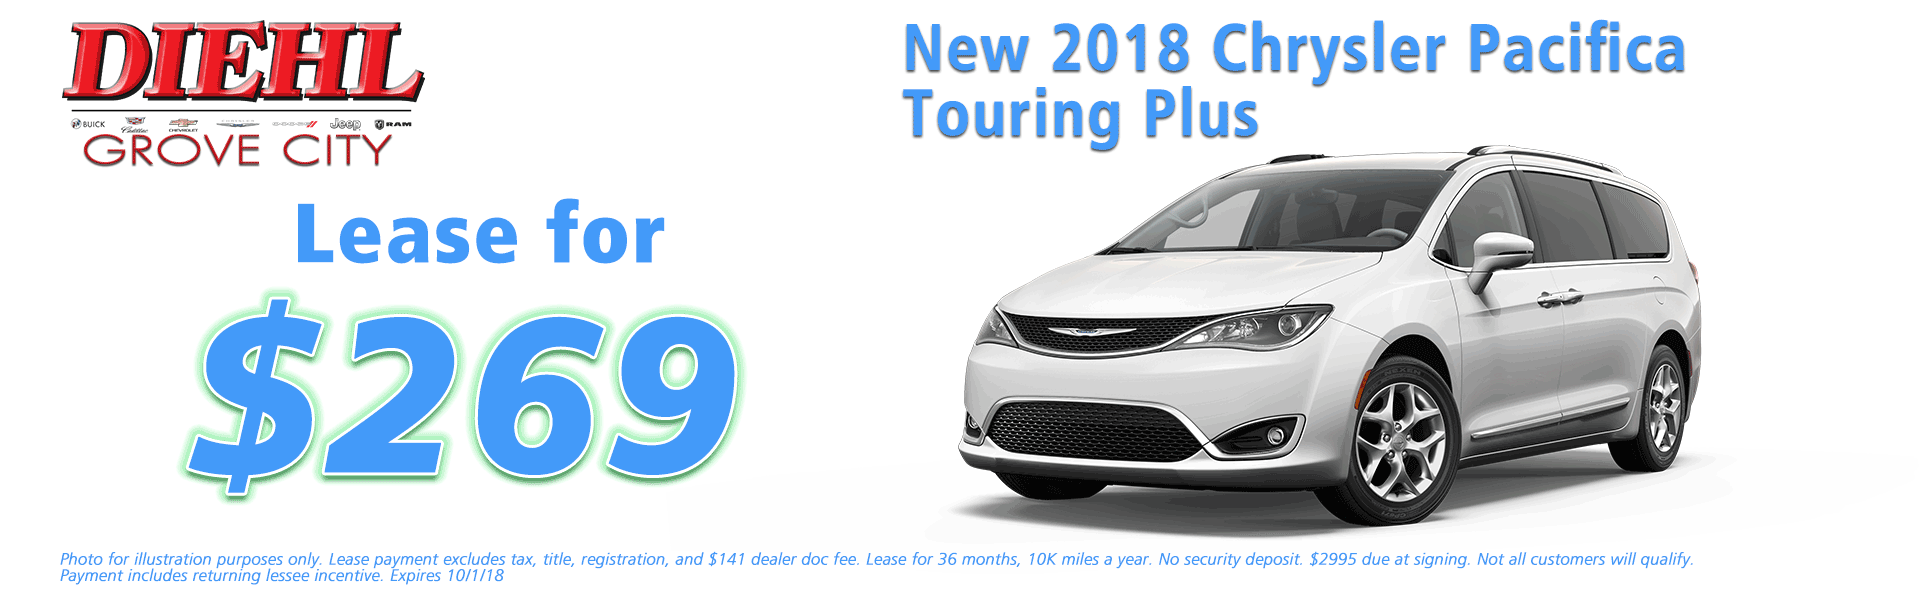 Diehl of Grove City Chrysler Jeep Dodge Ram Chevrolet Buick Cadillac Grove City, PA sales service parts collision repair NEW 2018 CHRYSLER PACIFICA TOURING PLUS